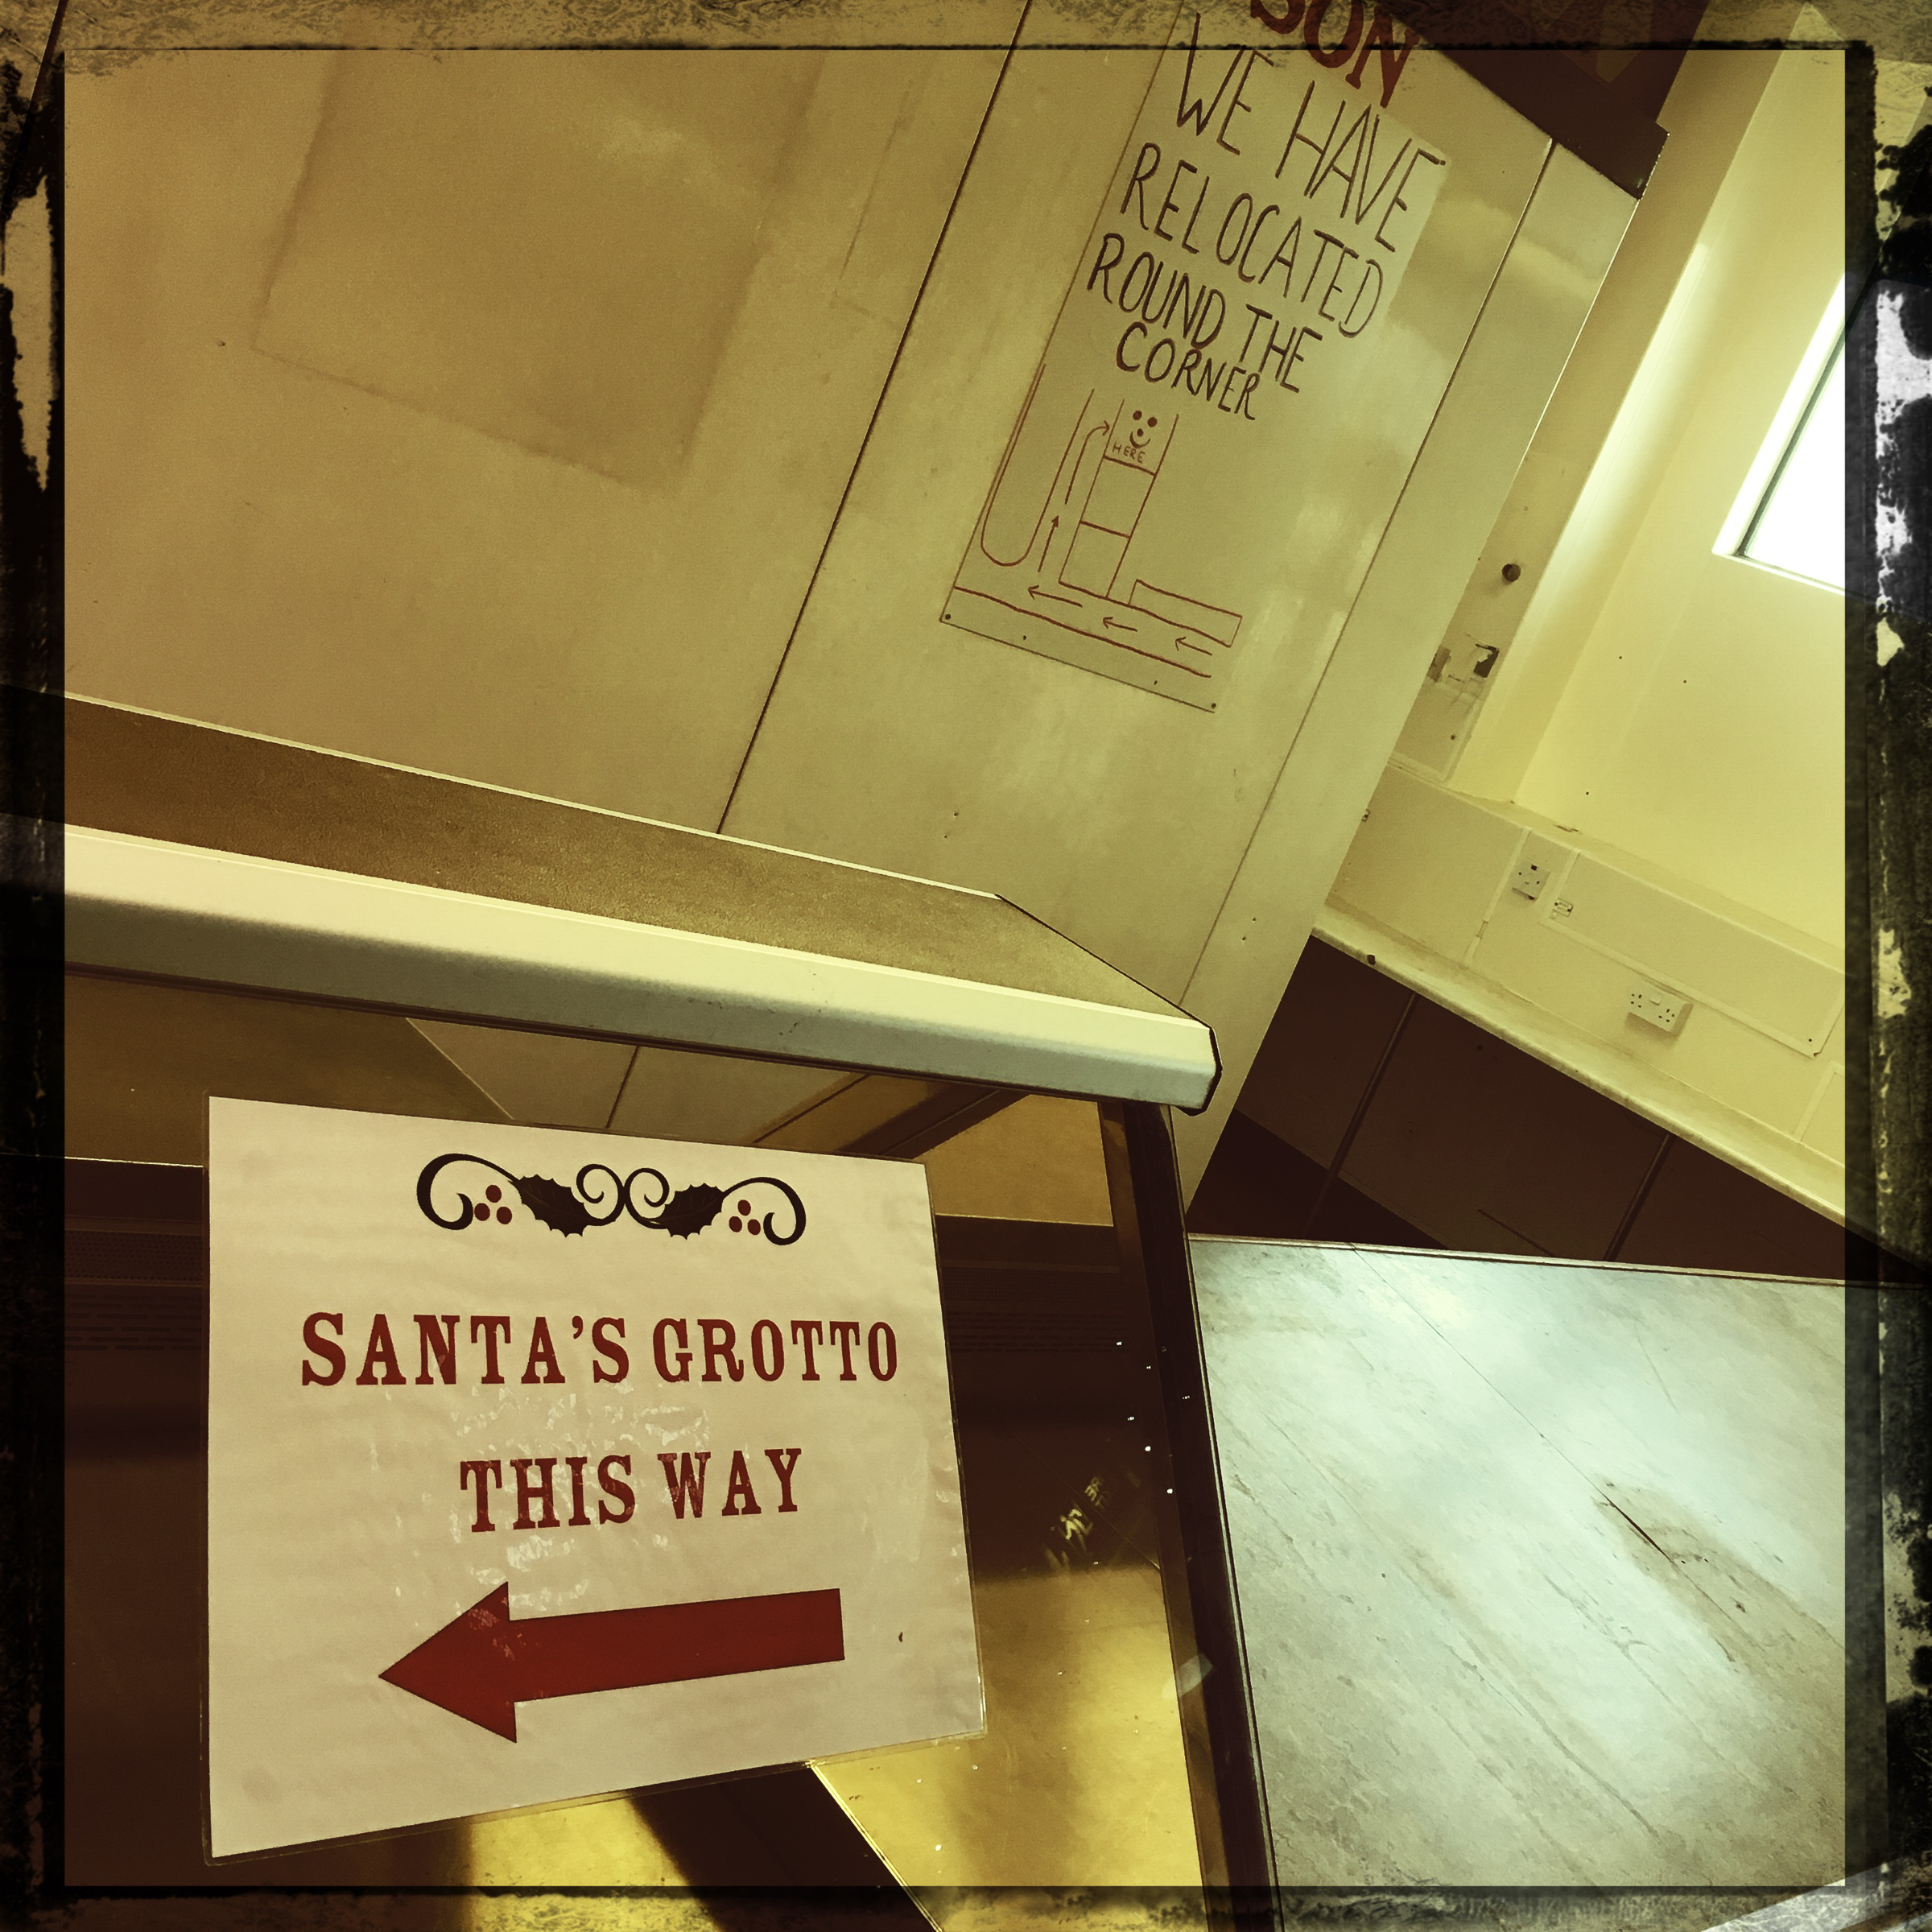 Santa's Grotto This Way